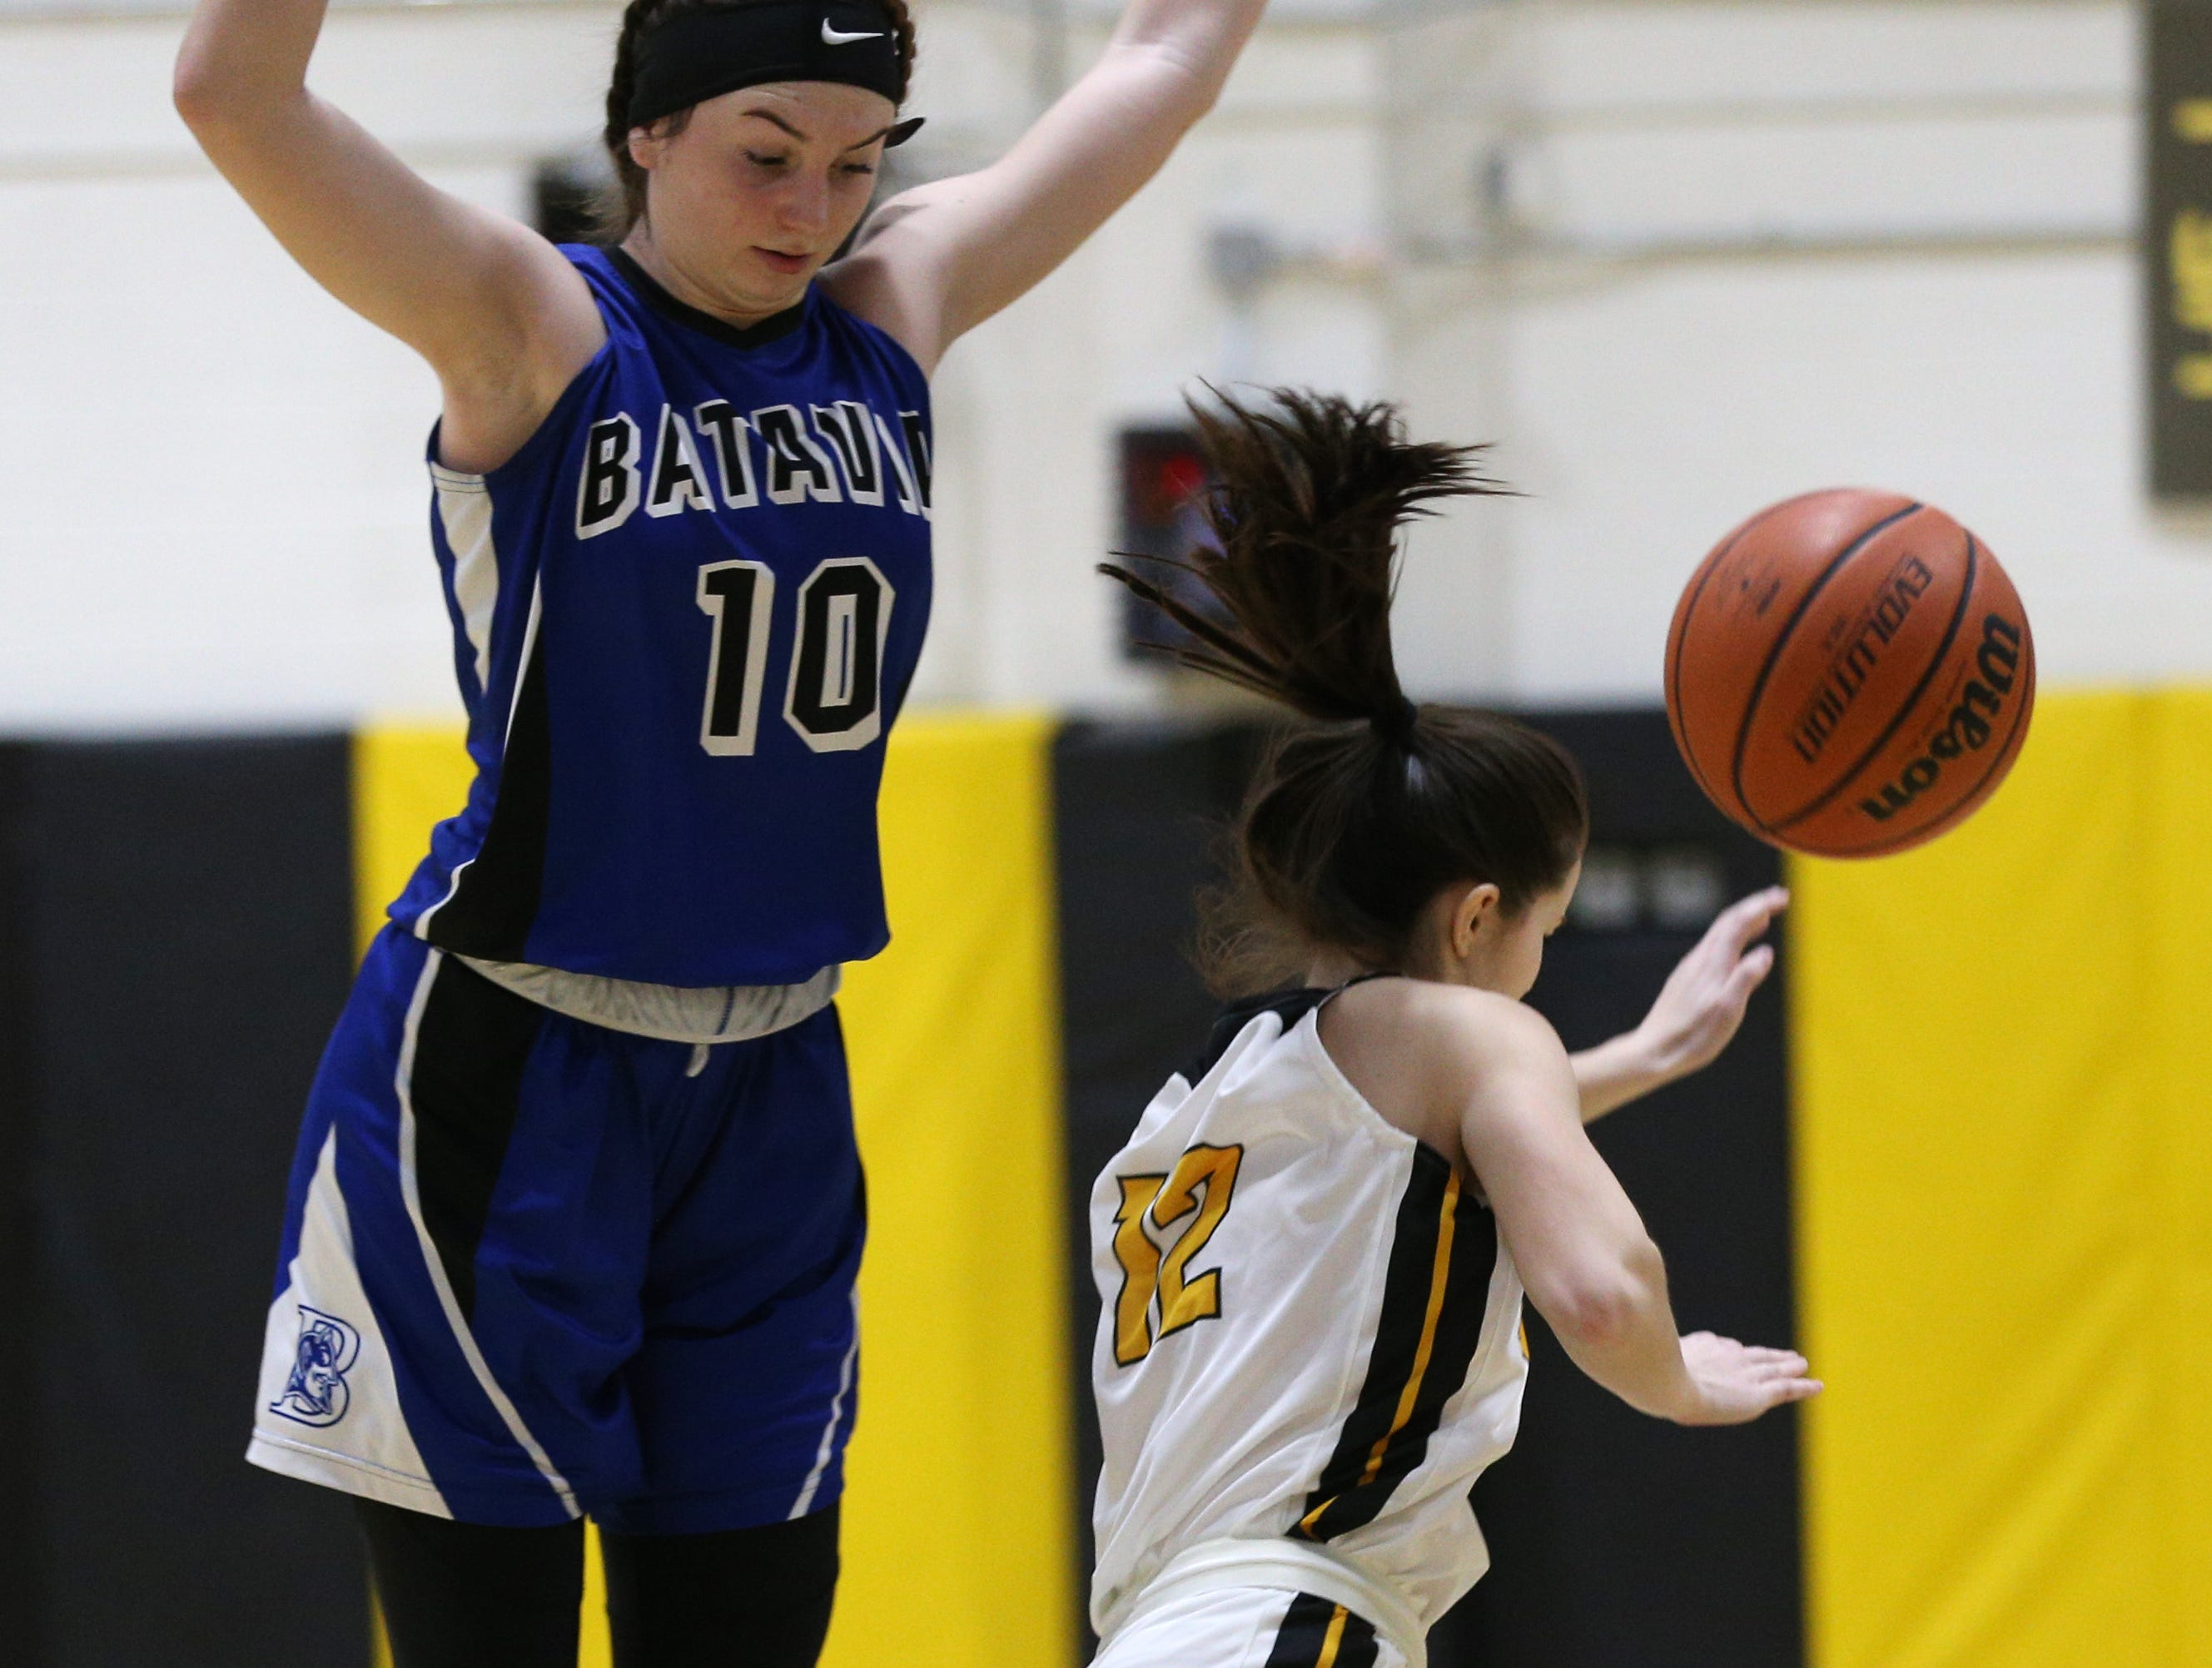 HF-L's Katie Brown (25) against Batavia's Ryann Stefaniak (10).